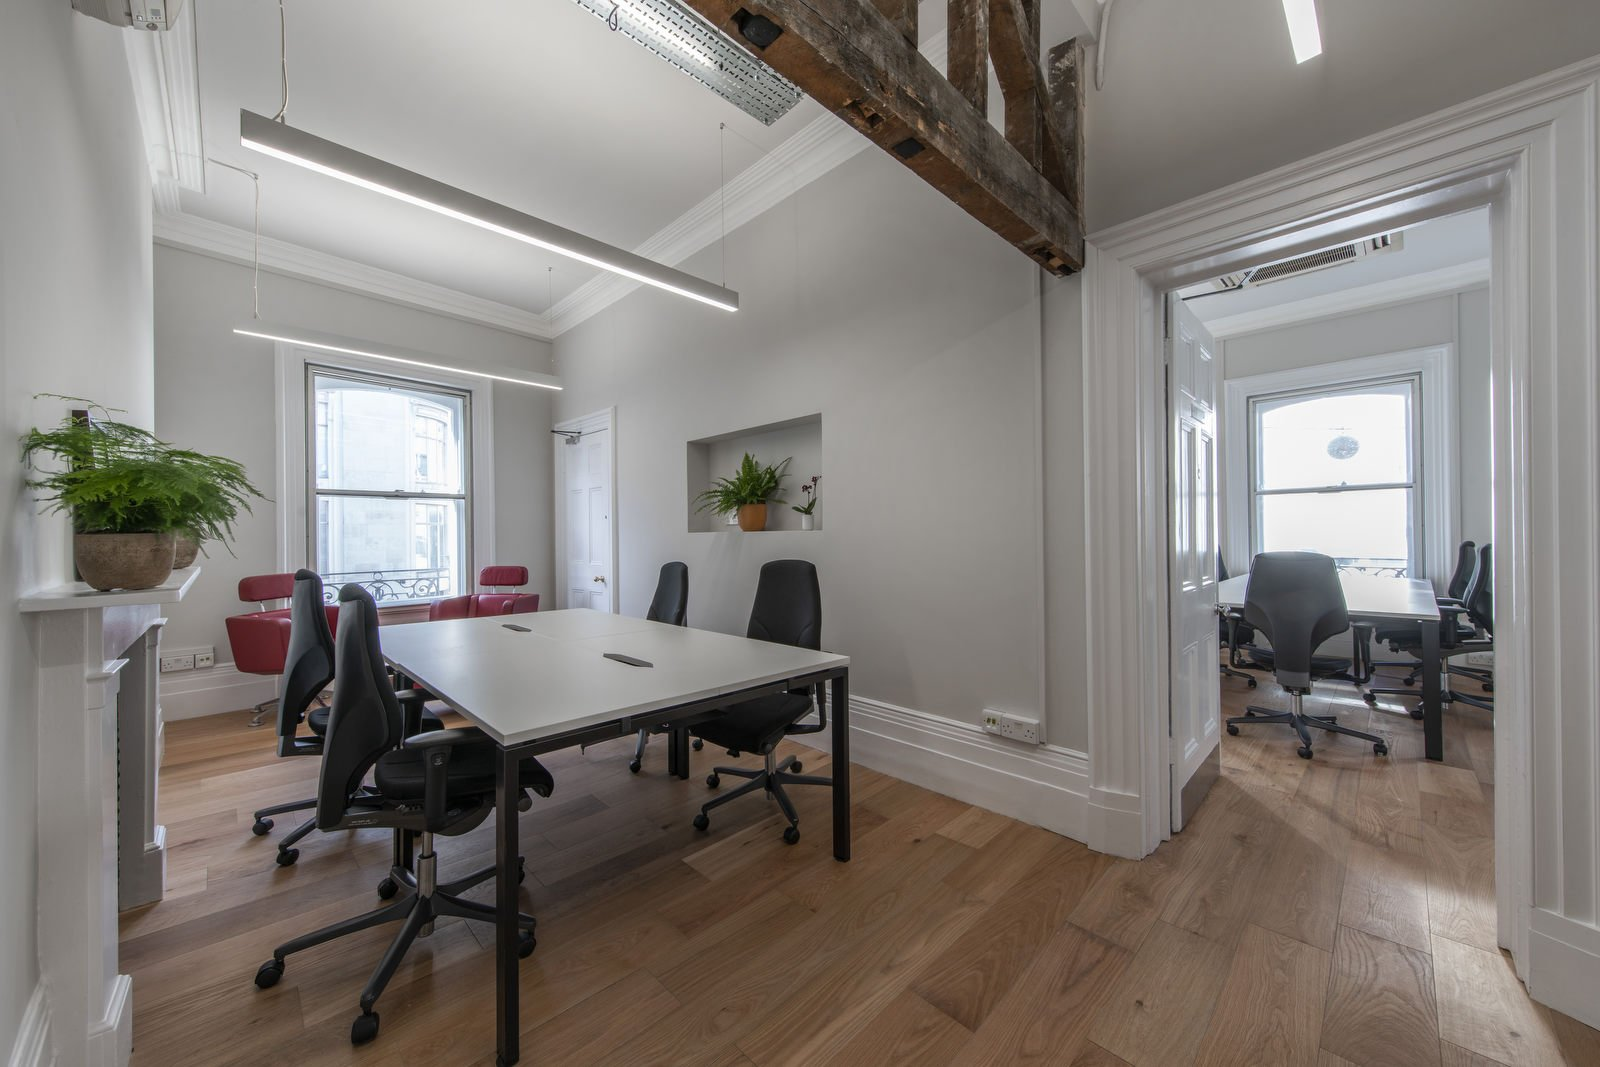 Renting small office spaces in Mayfair London